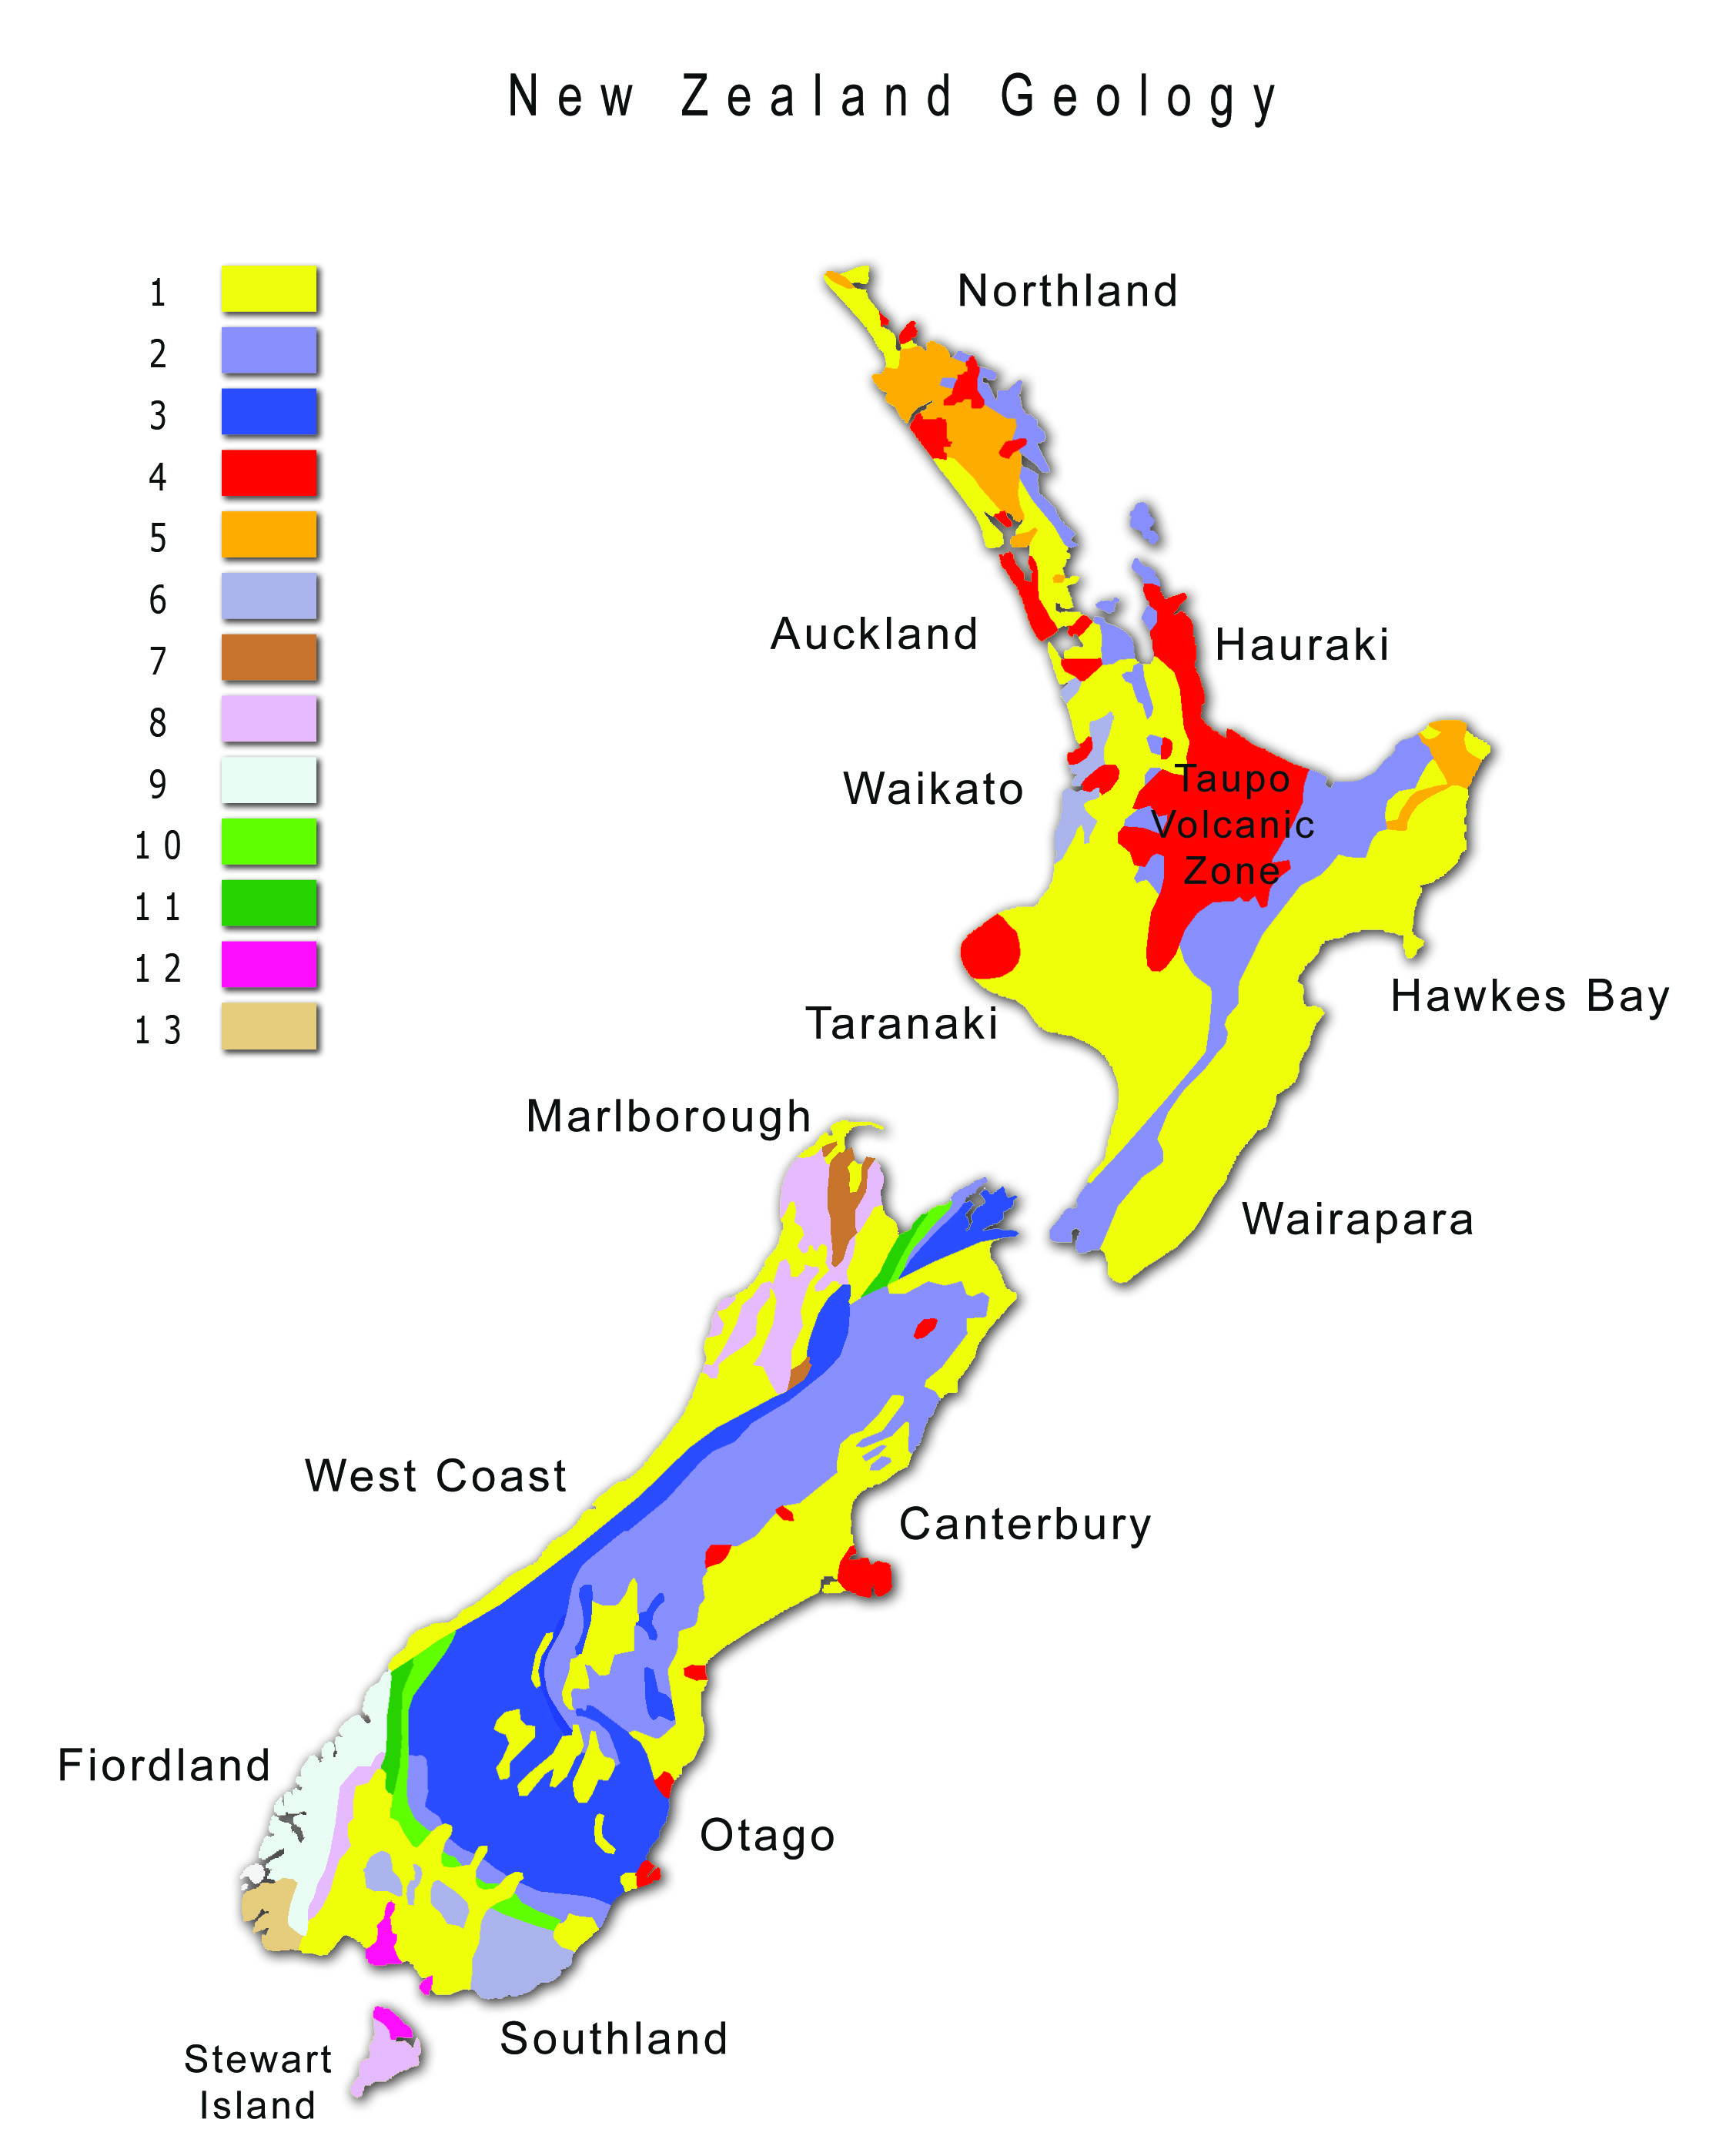 Best 7 Geology and Geography Universities in New Zealand ...